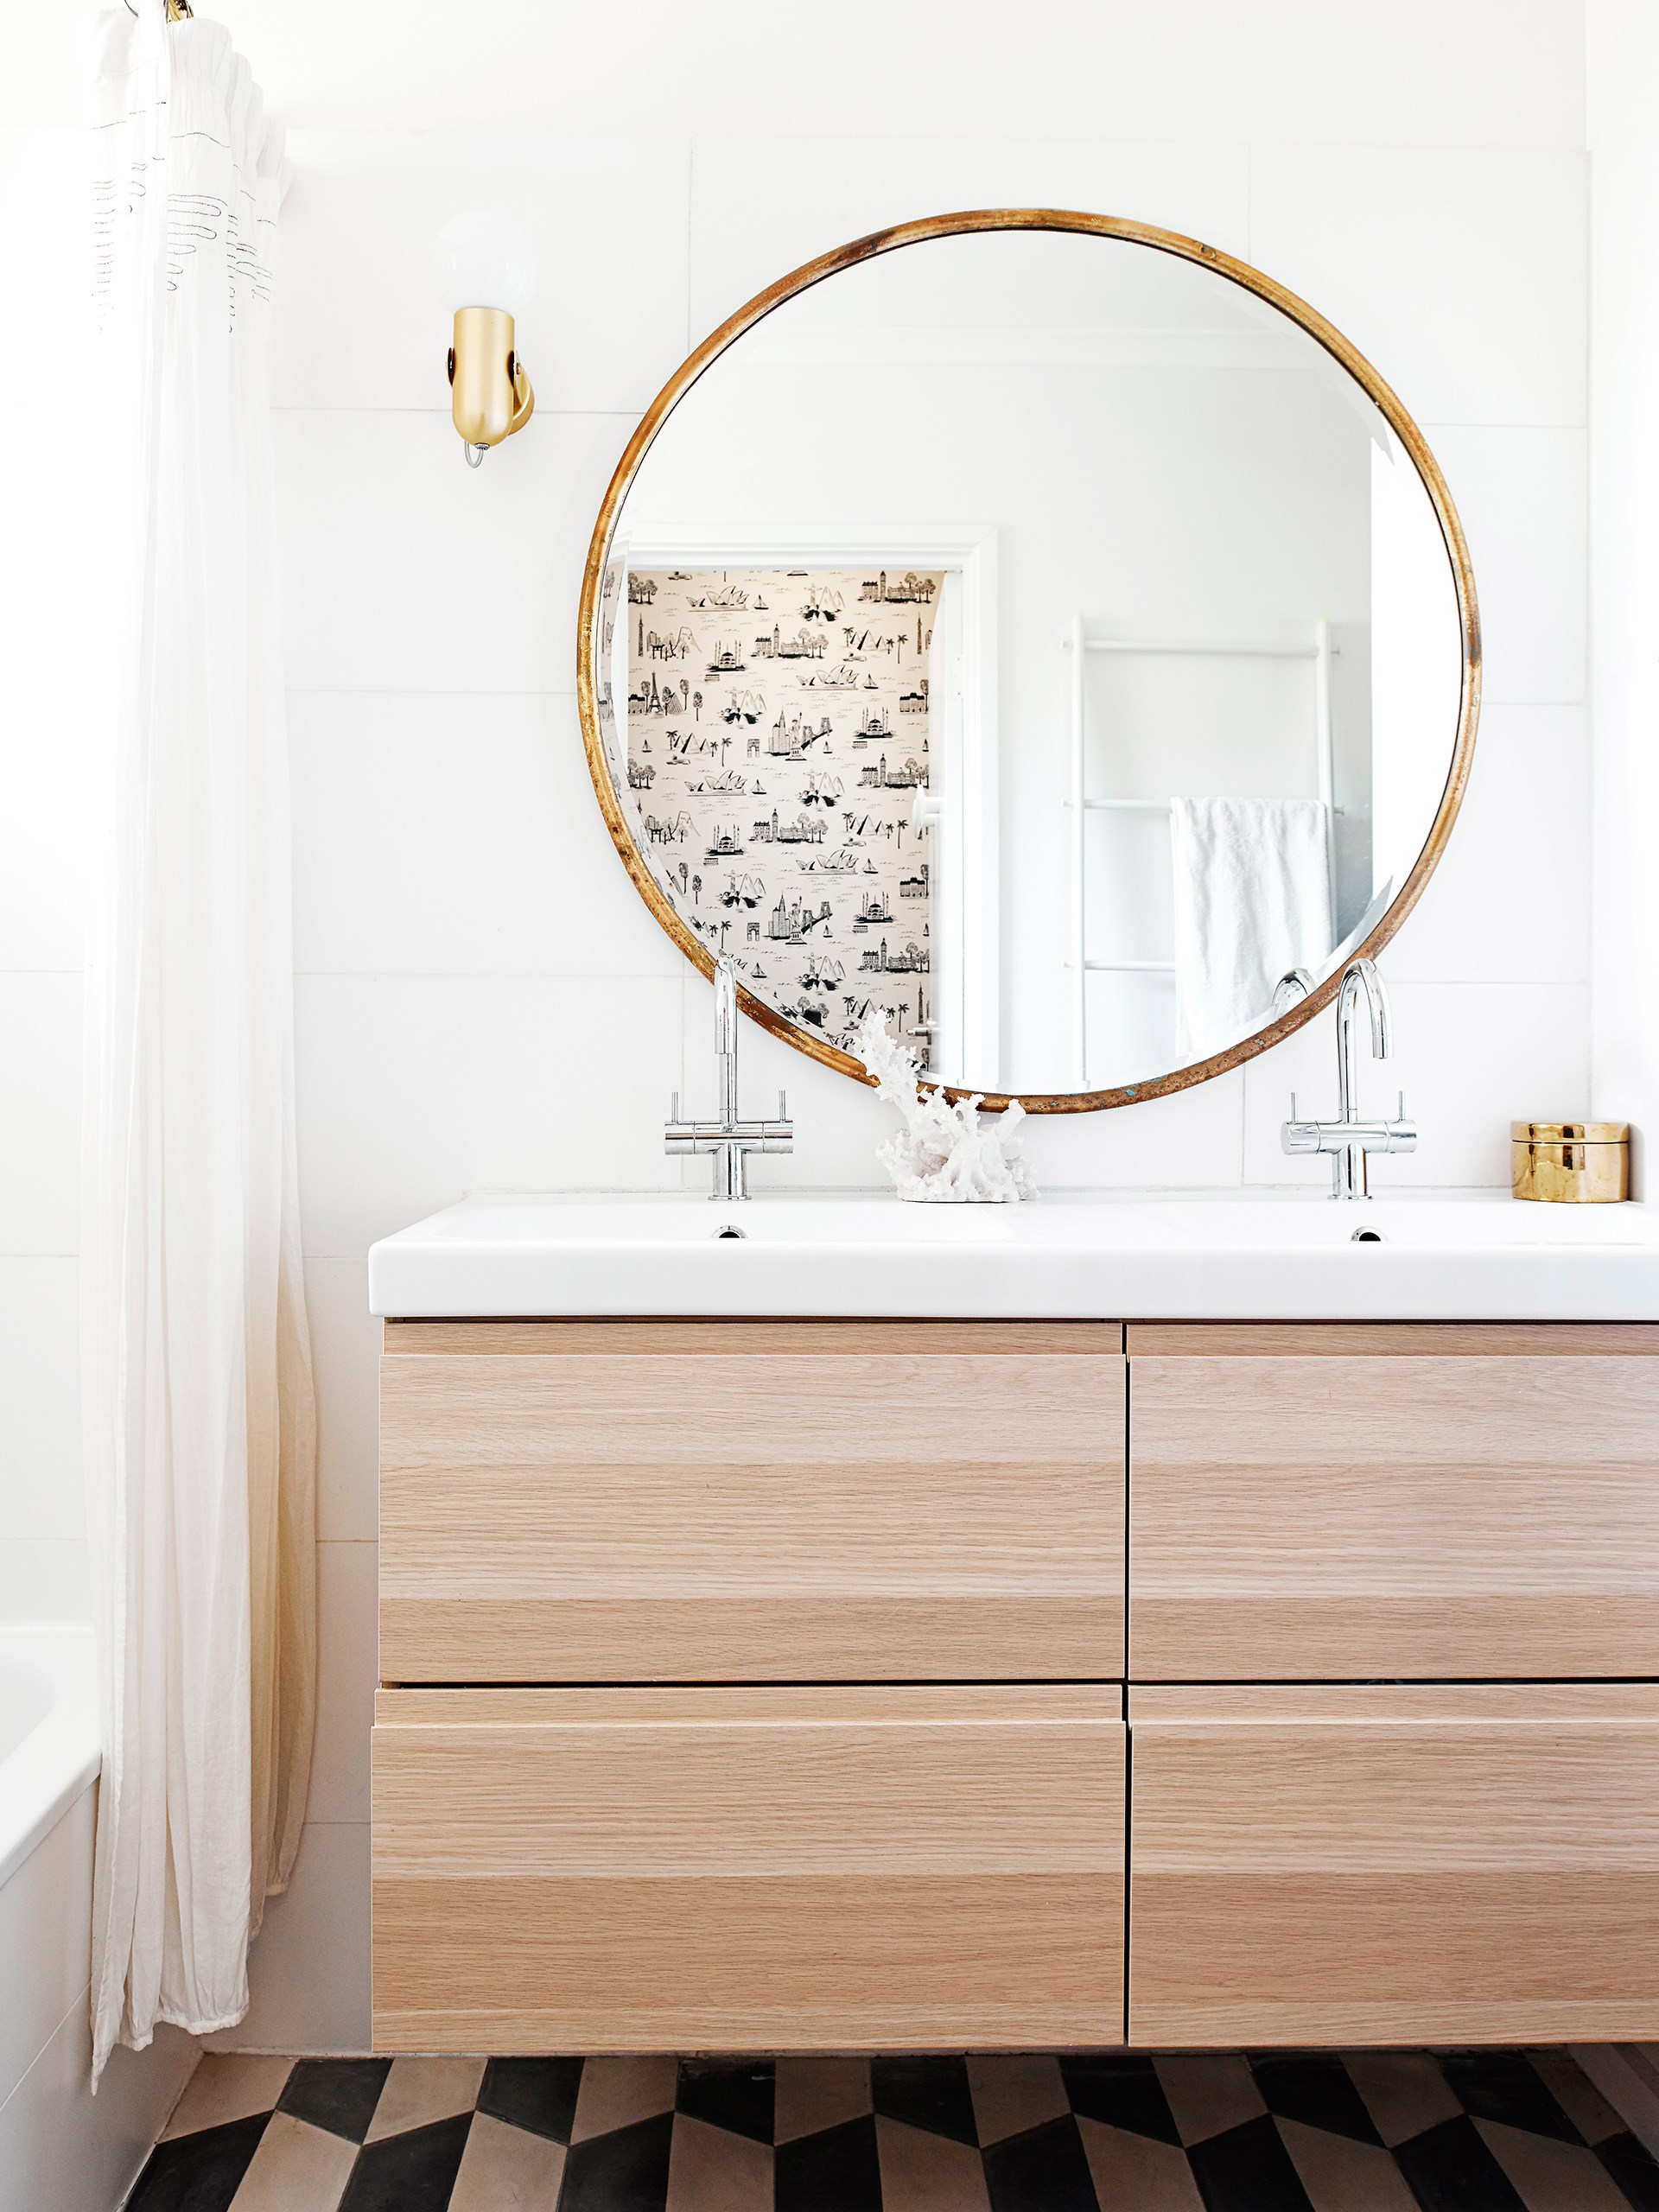 "Brass wall sconces add a luxe touch in the bathroom of this [Scani-retro unit](http://www.homestolove.com.au/interior-designer-lauren-lis-creative-home-renovation-2843|target=""_blank""). Photo: Eve Wilson / real living"